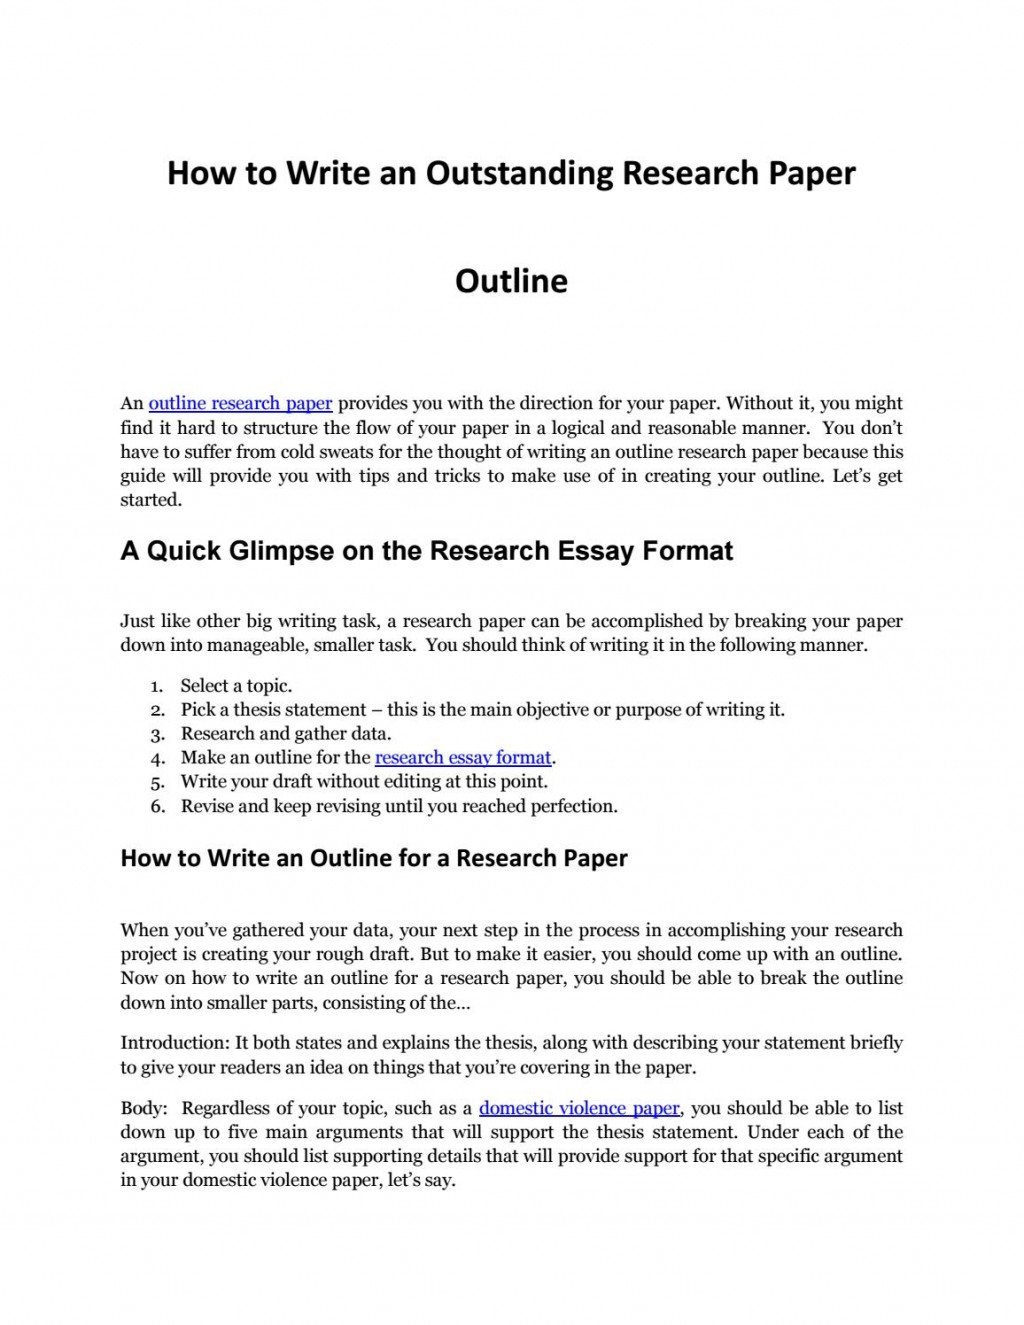 020 Write Outline Research Paper Page 1 Exceptional How To An For Mla Style Apa Template Large